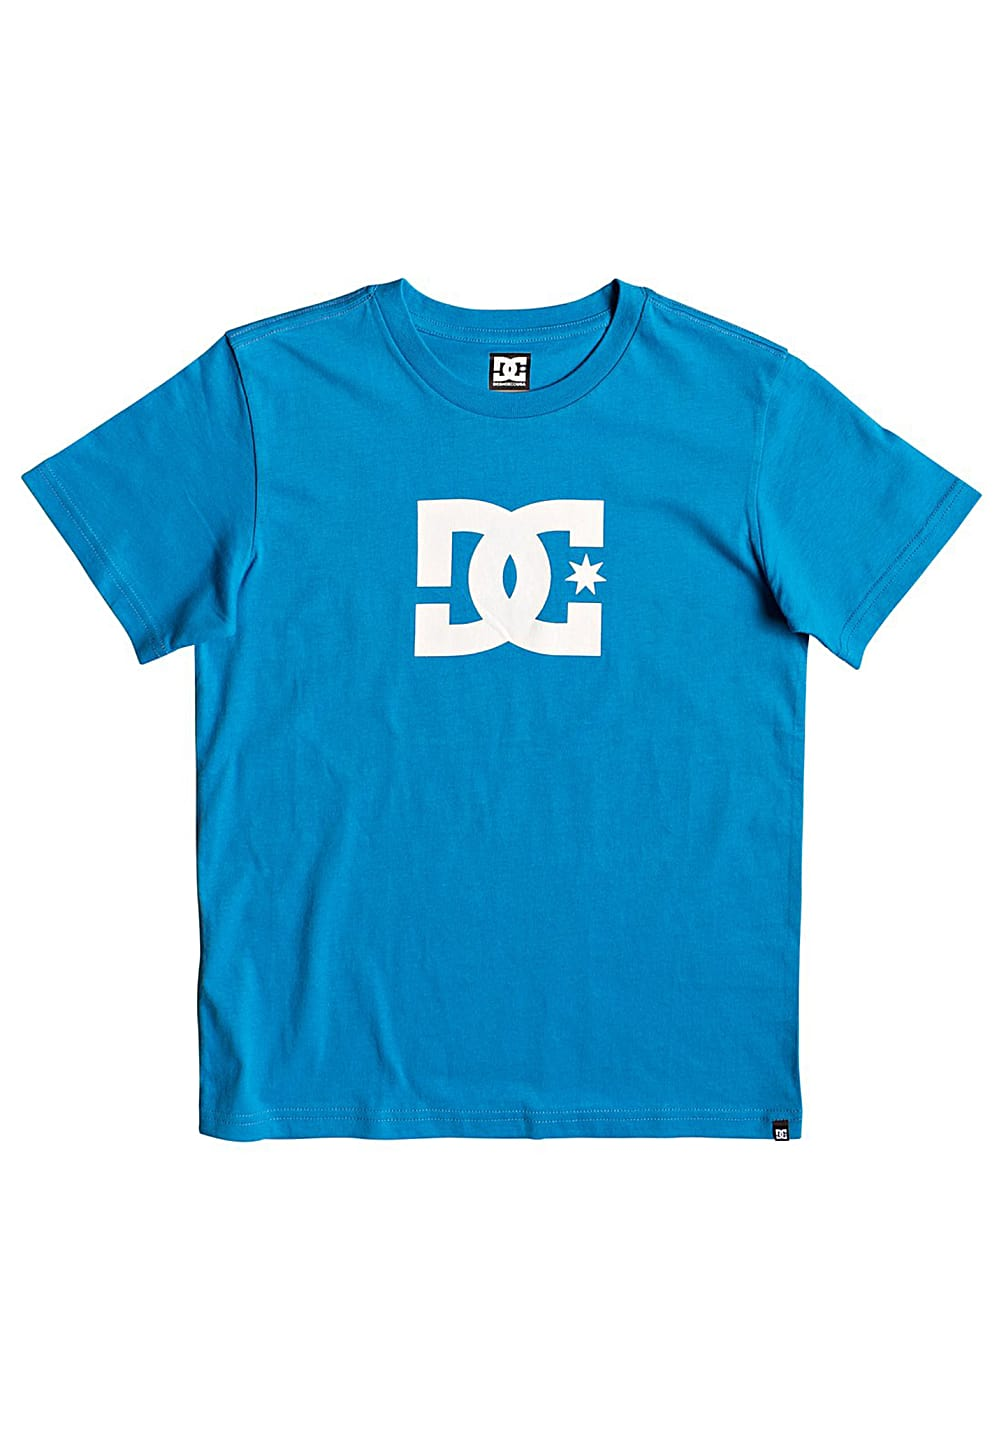 Boysoberteile - DC Star T-Shirt für Jungs Blau - Onlineshop Planet Sports